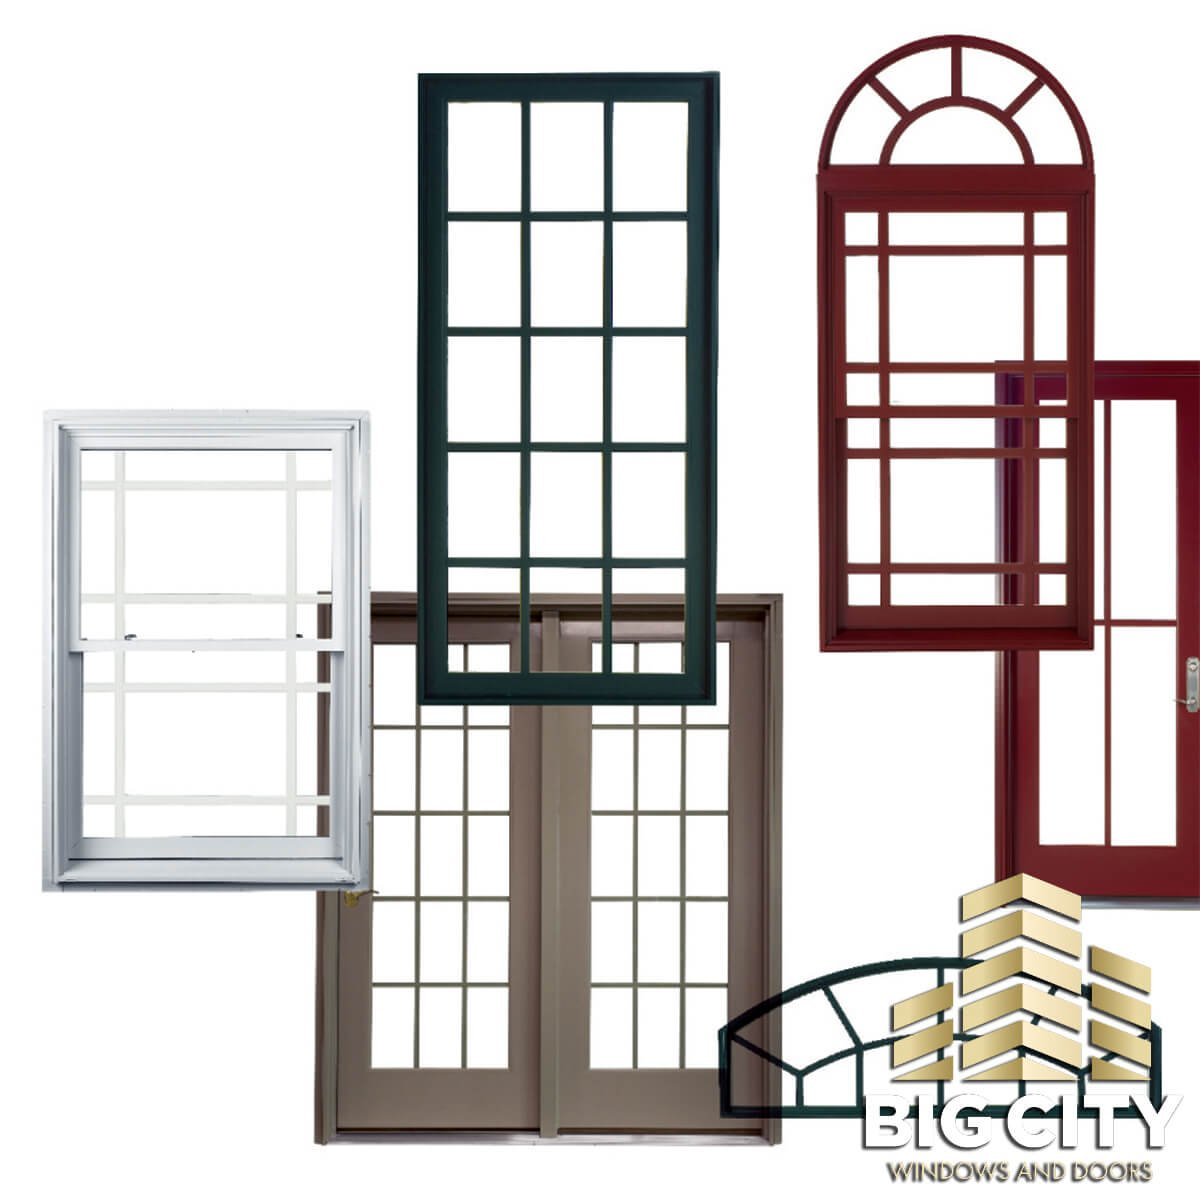 Each Bringing Their Own Pros And Cons Https Www Citywindows En Blog Type Of Windows Windowsottawa Windowsreplacement Homeimprovement